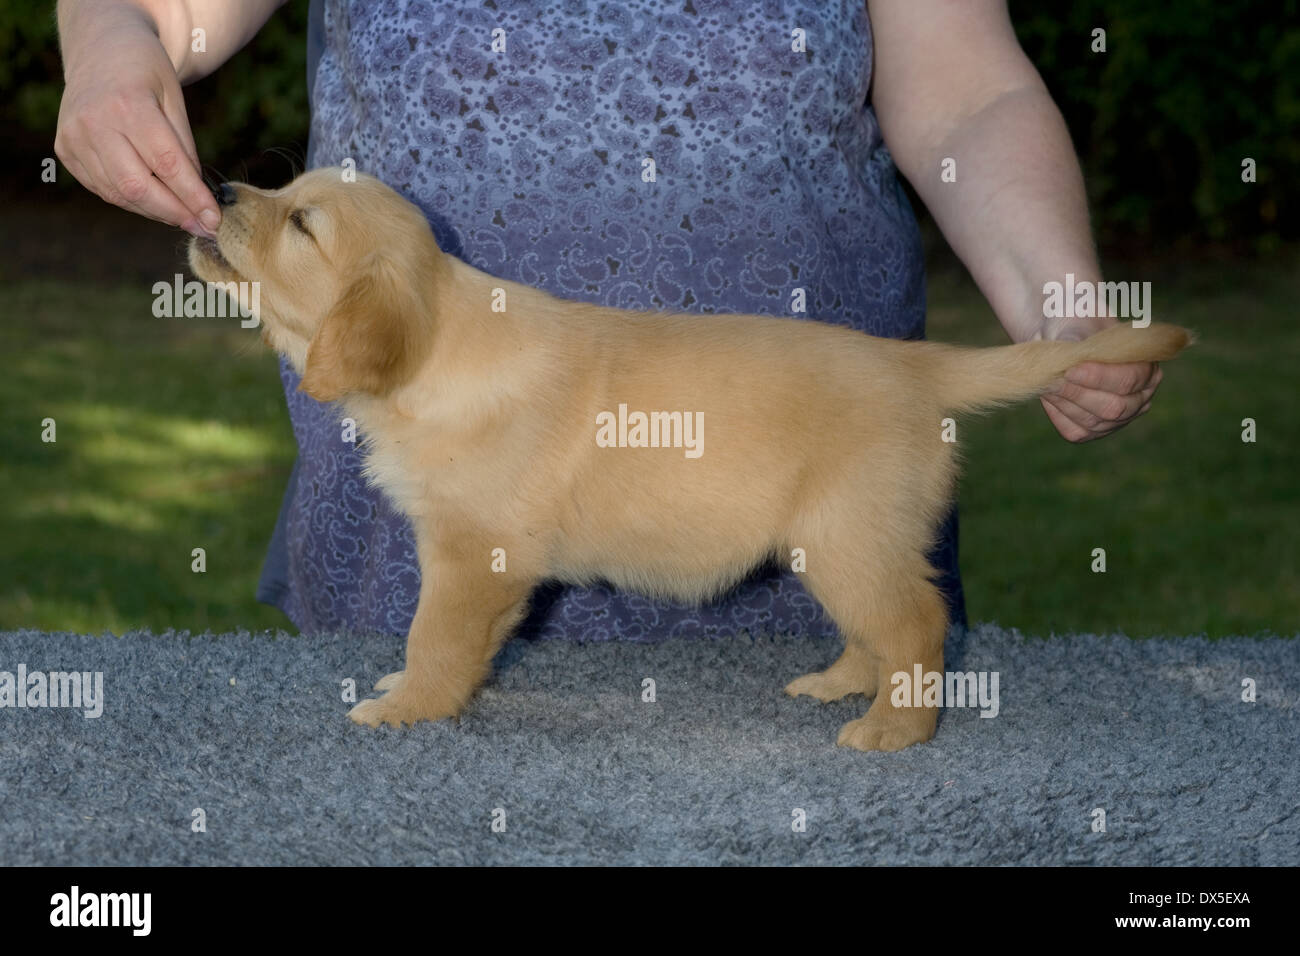 Tressa, Yorkbeach Third Patrol, 8 week old female golden retriever puppy stands formally on vet bed in garden on summer morning - Stock Image